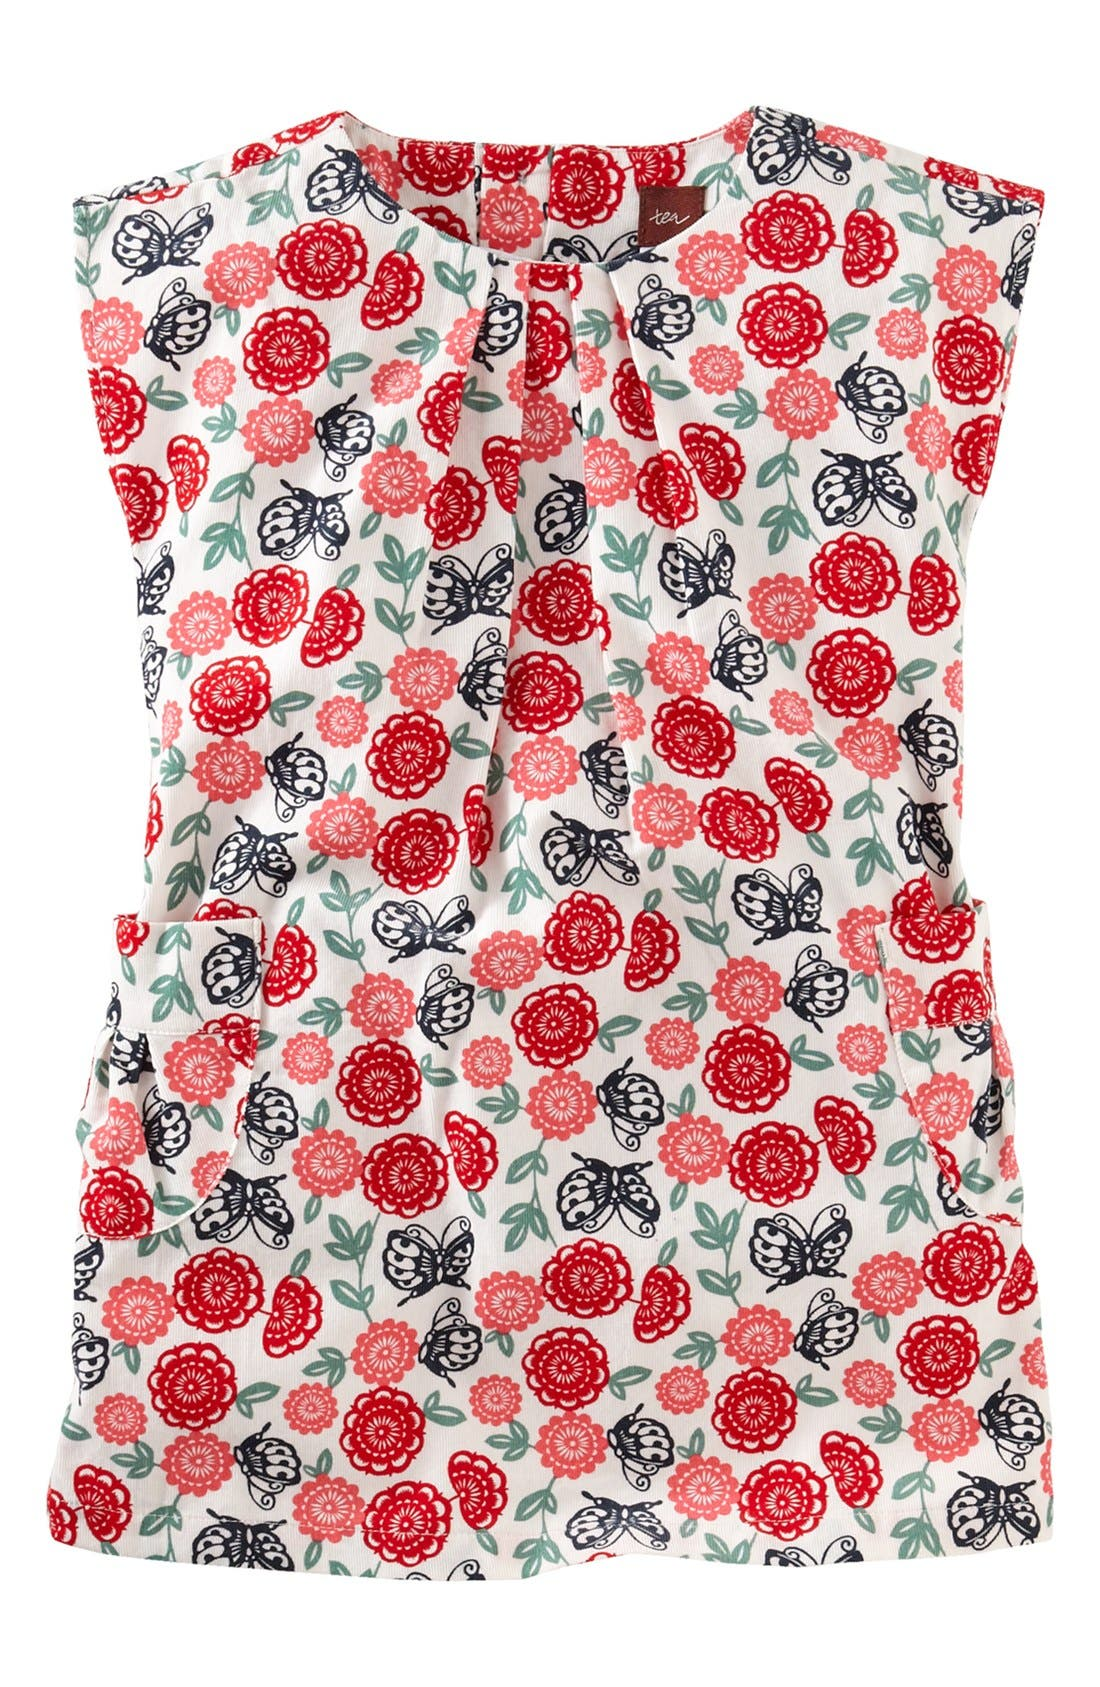 Alternate Image 1 Selected - Tea Collection 'Butterfly' Dress (Toddler Girls)